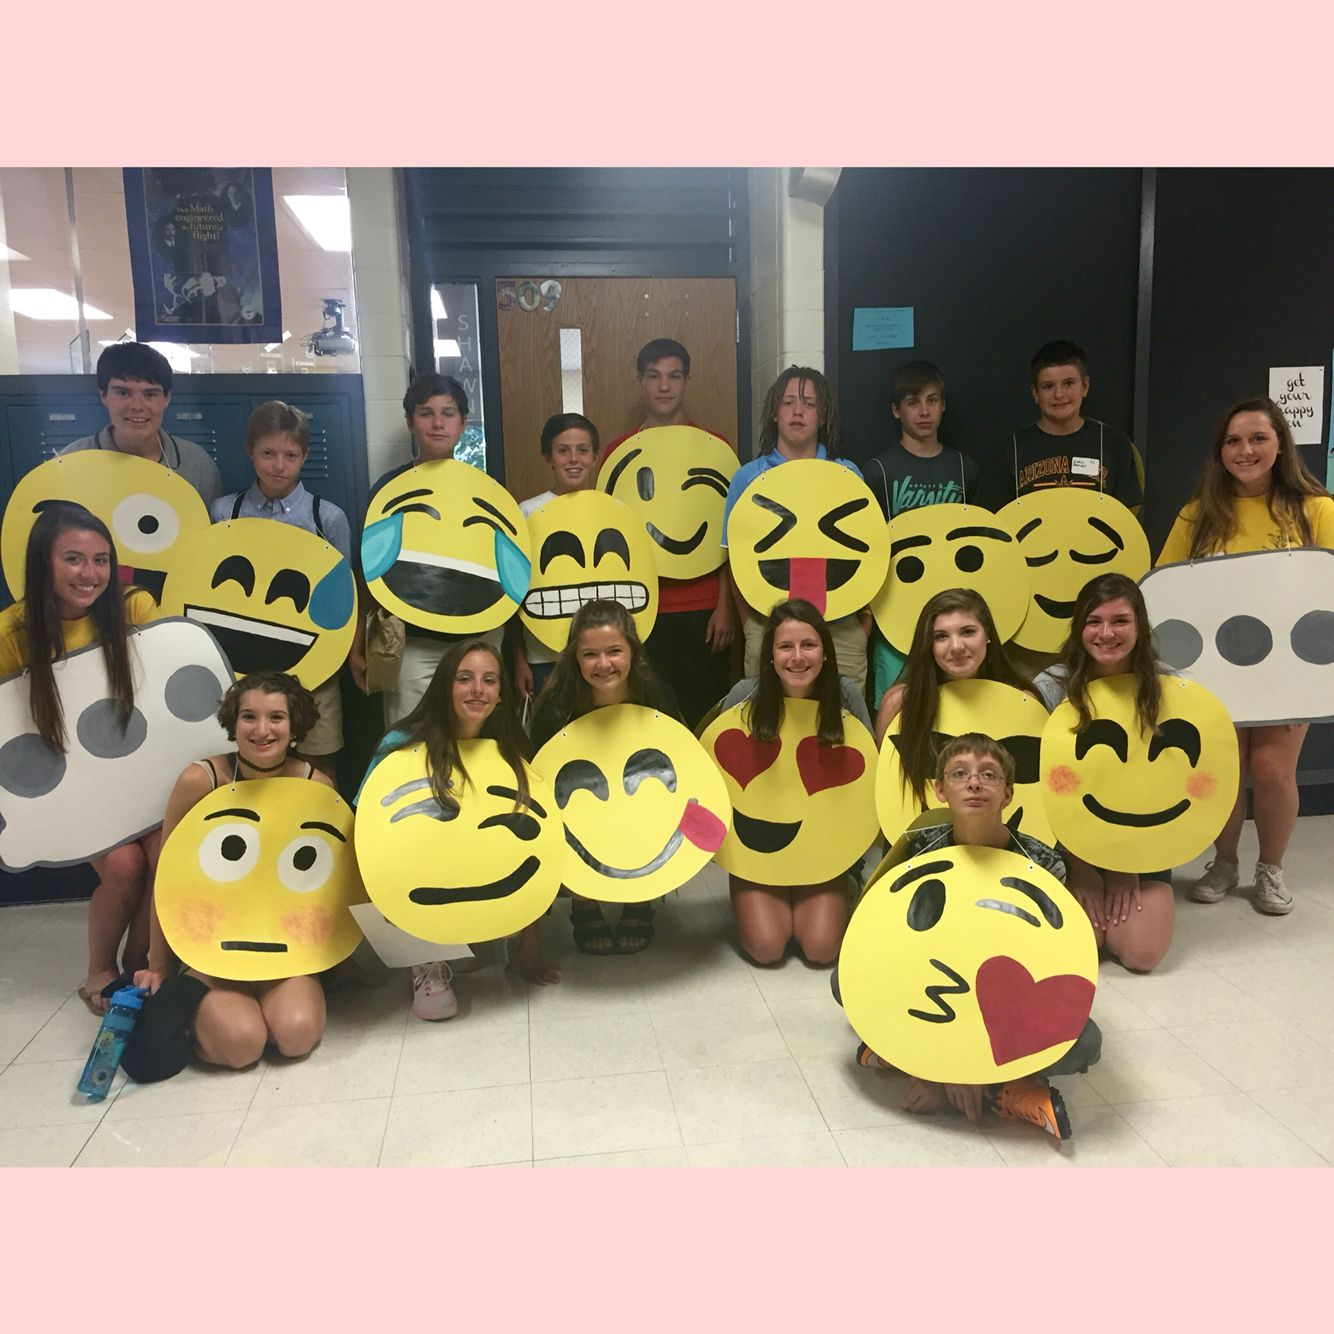 costume ideas emojis costume emojis halloween highschool - Halloween Social Ideas